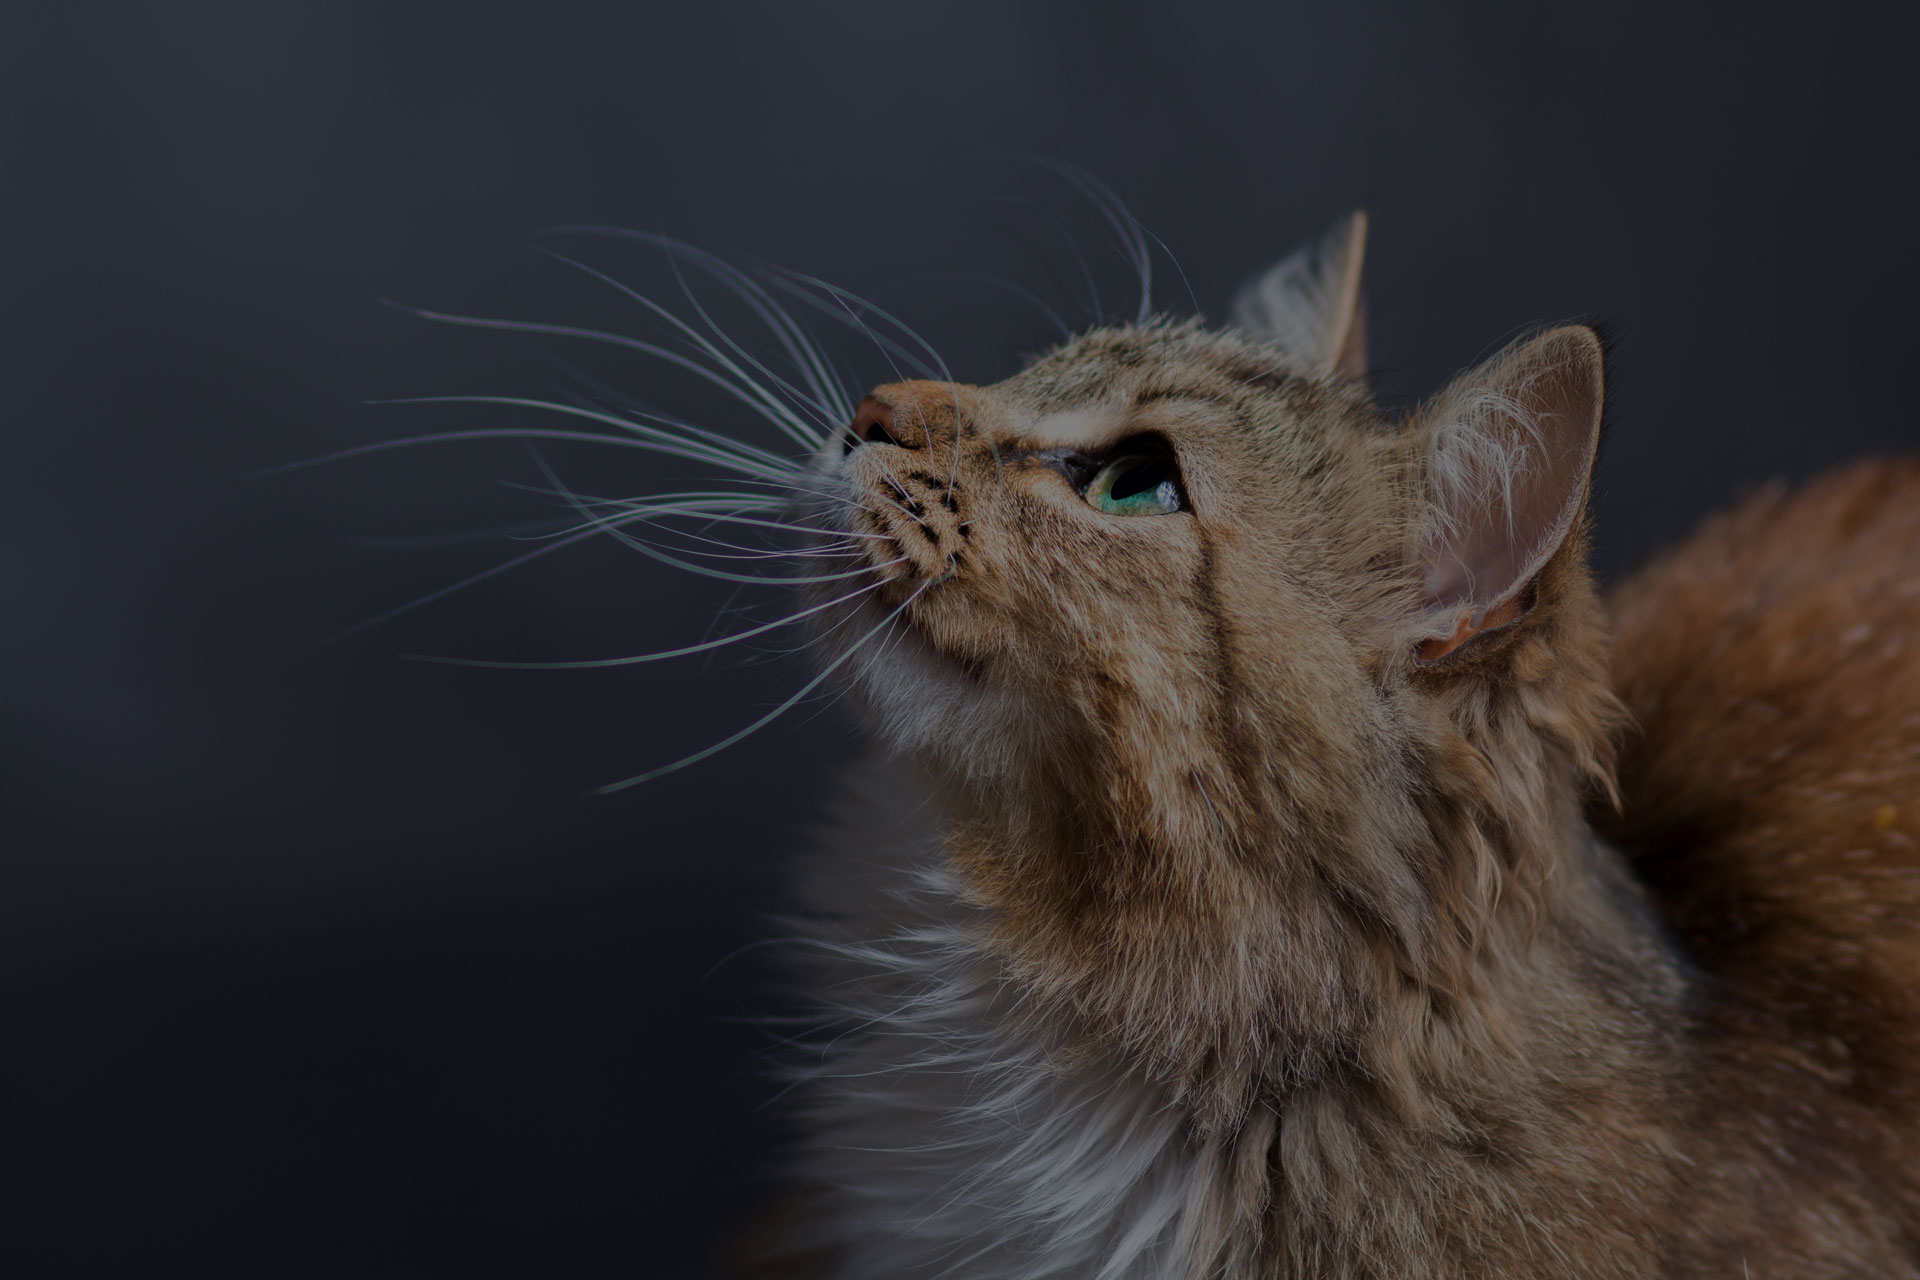 portrait of a beautiful cat